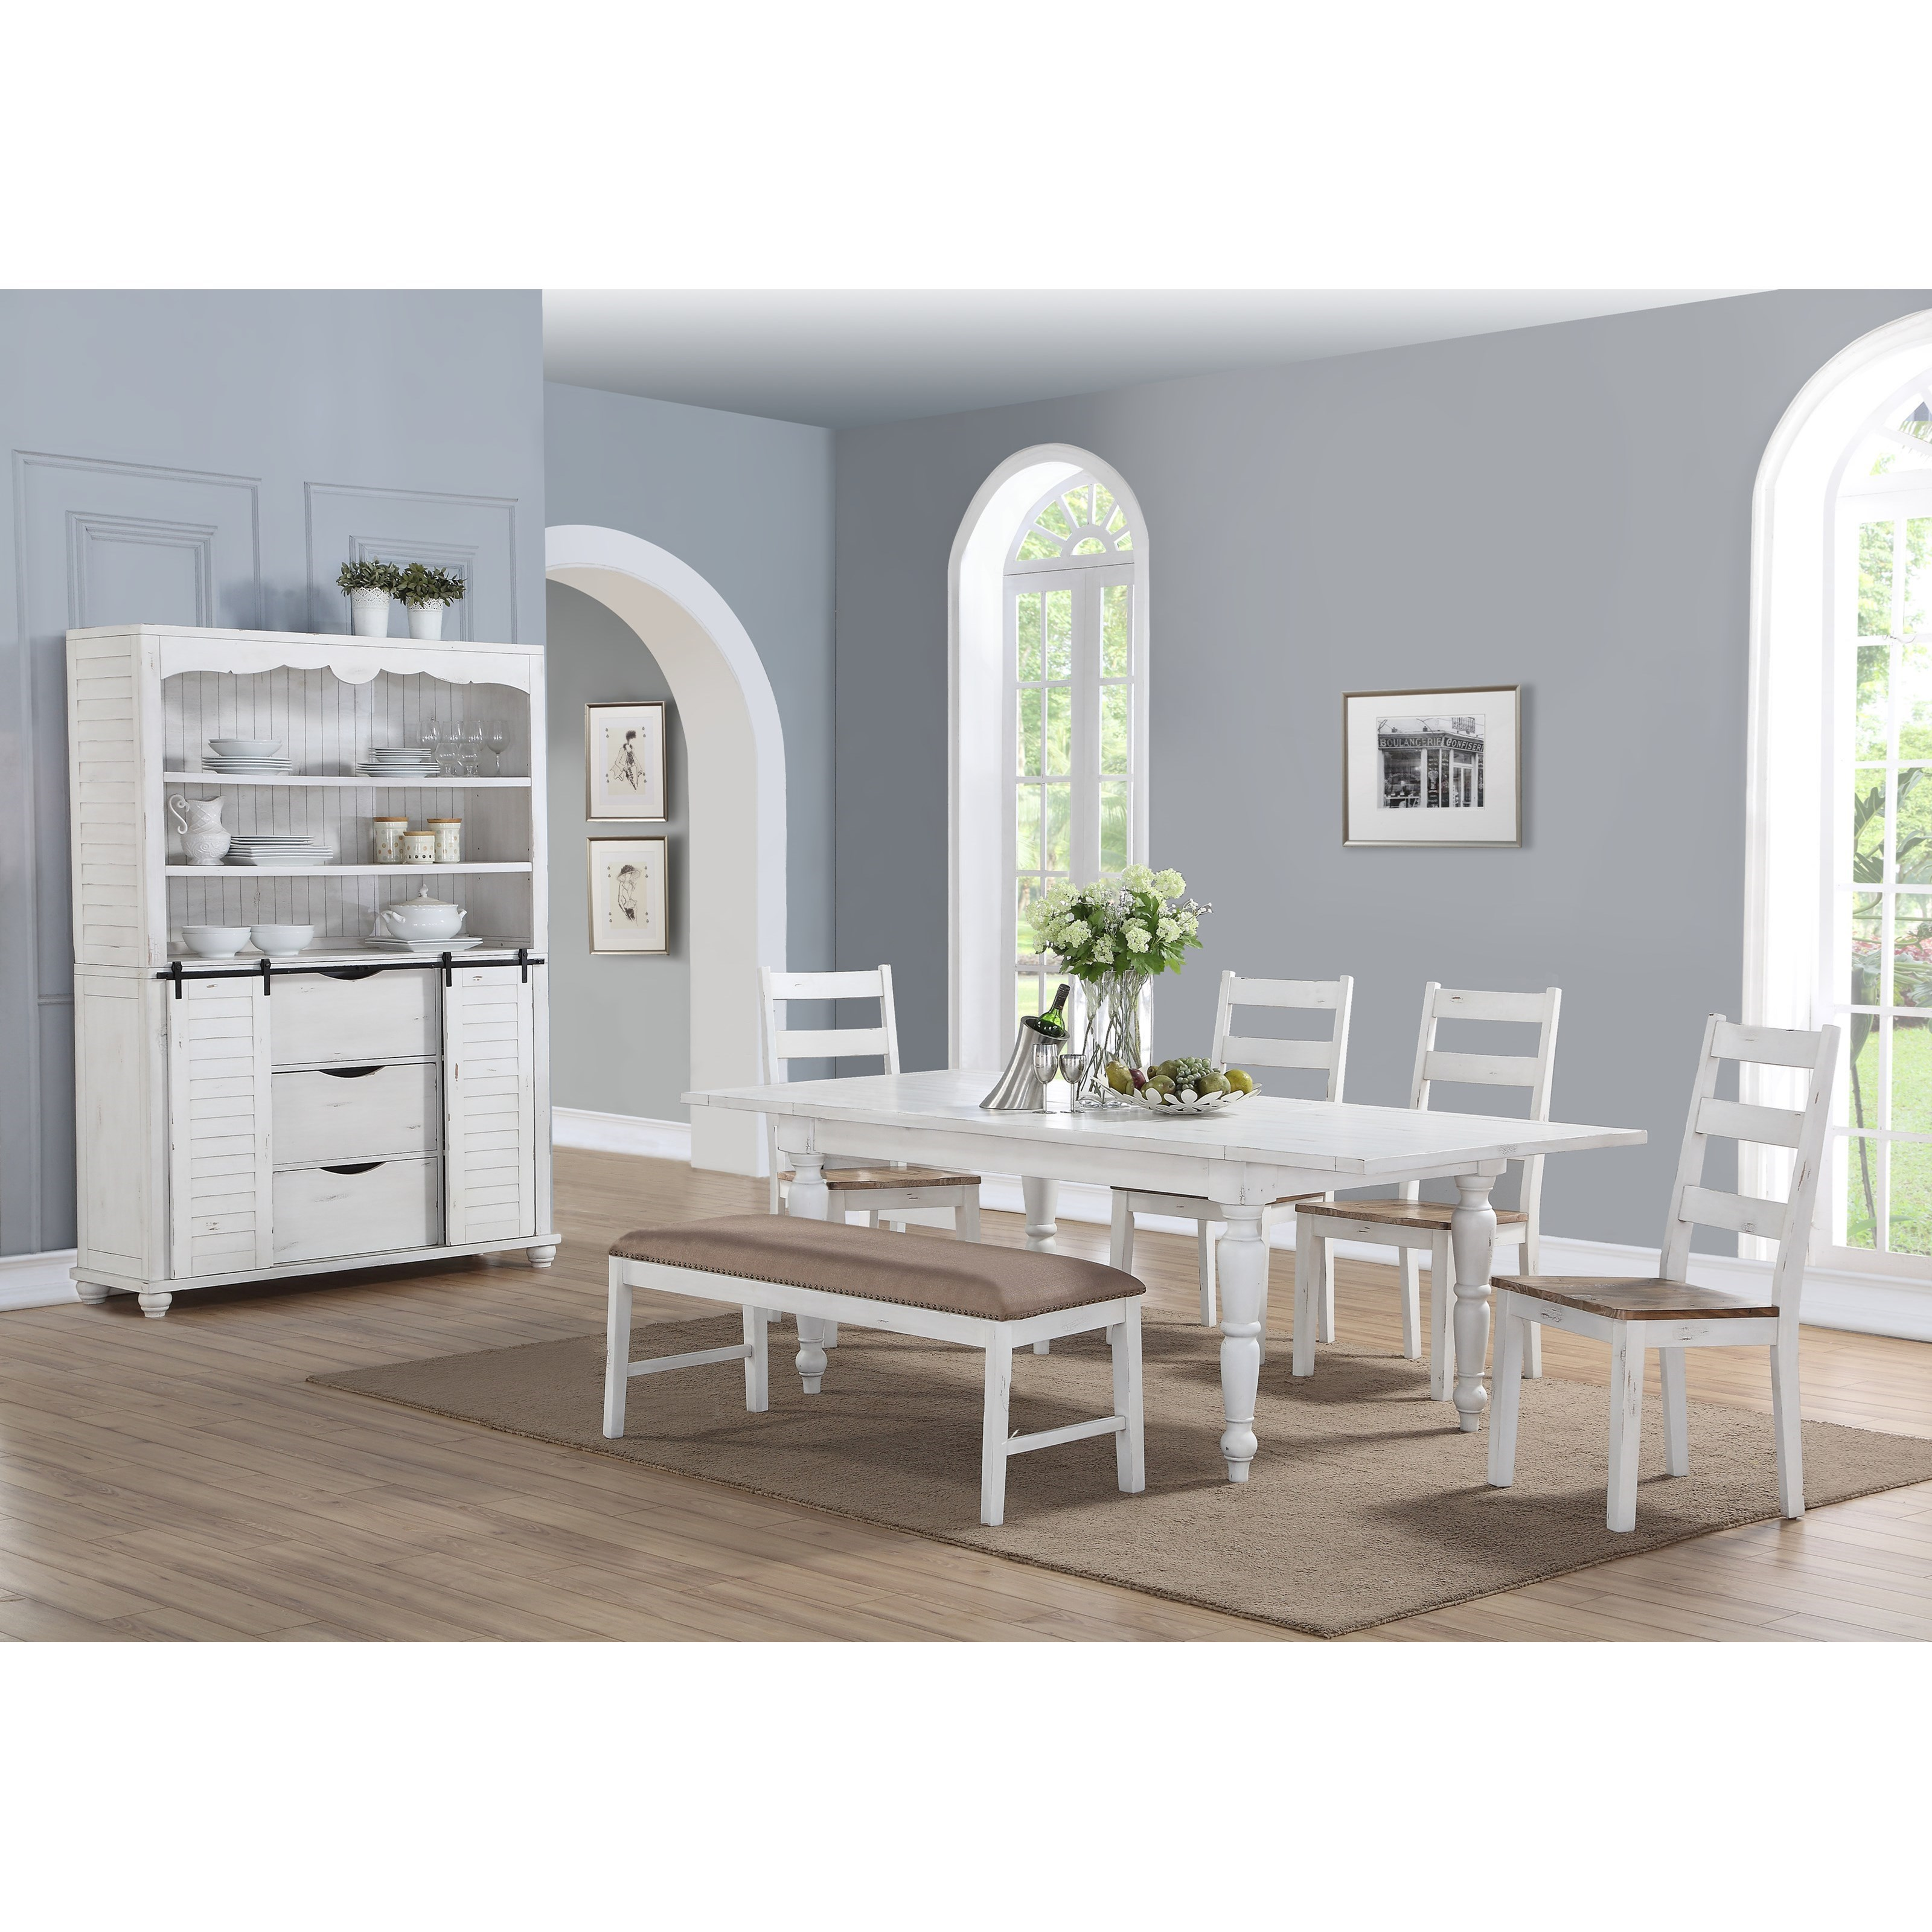 Abaco Dining Room Group by Emerald at Suburban Furniture